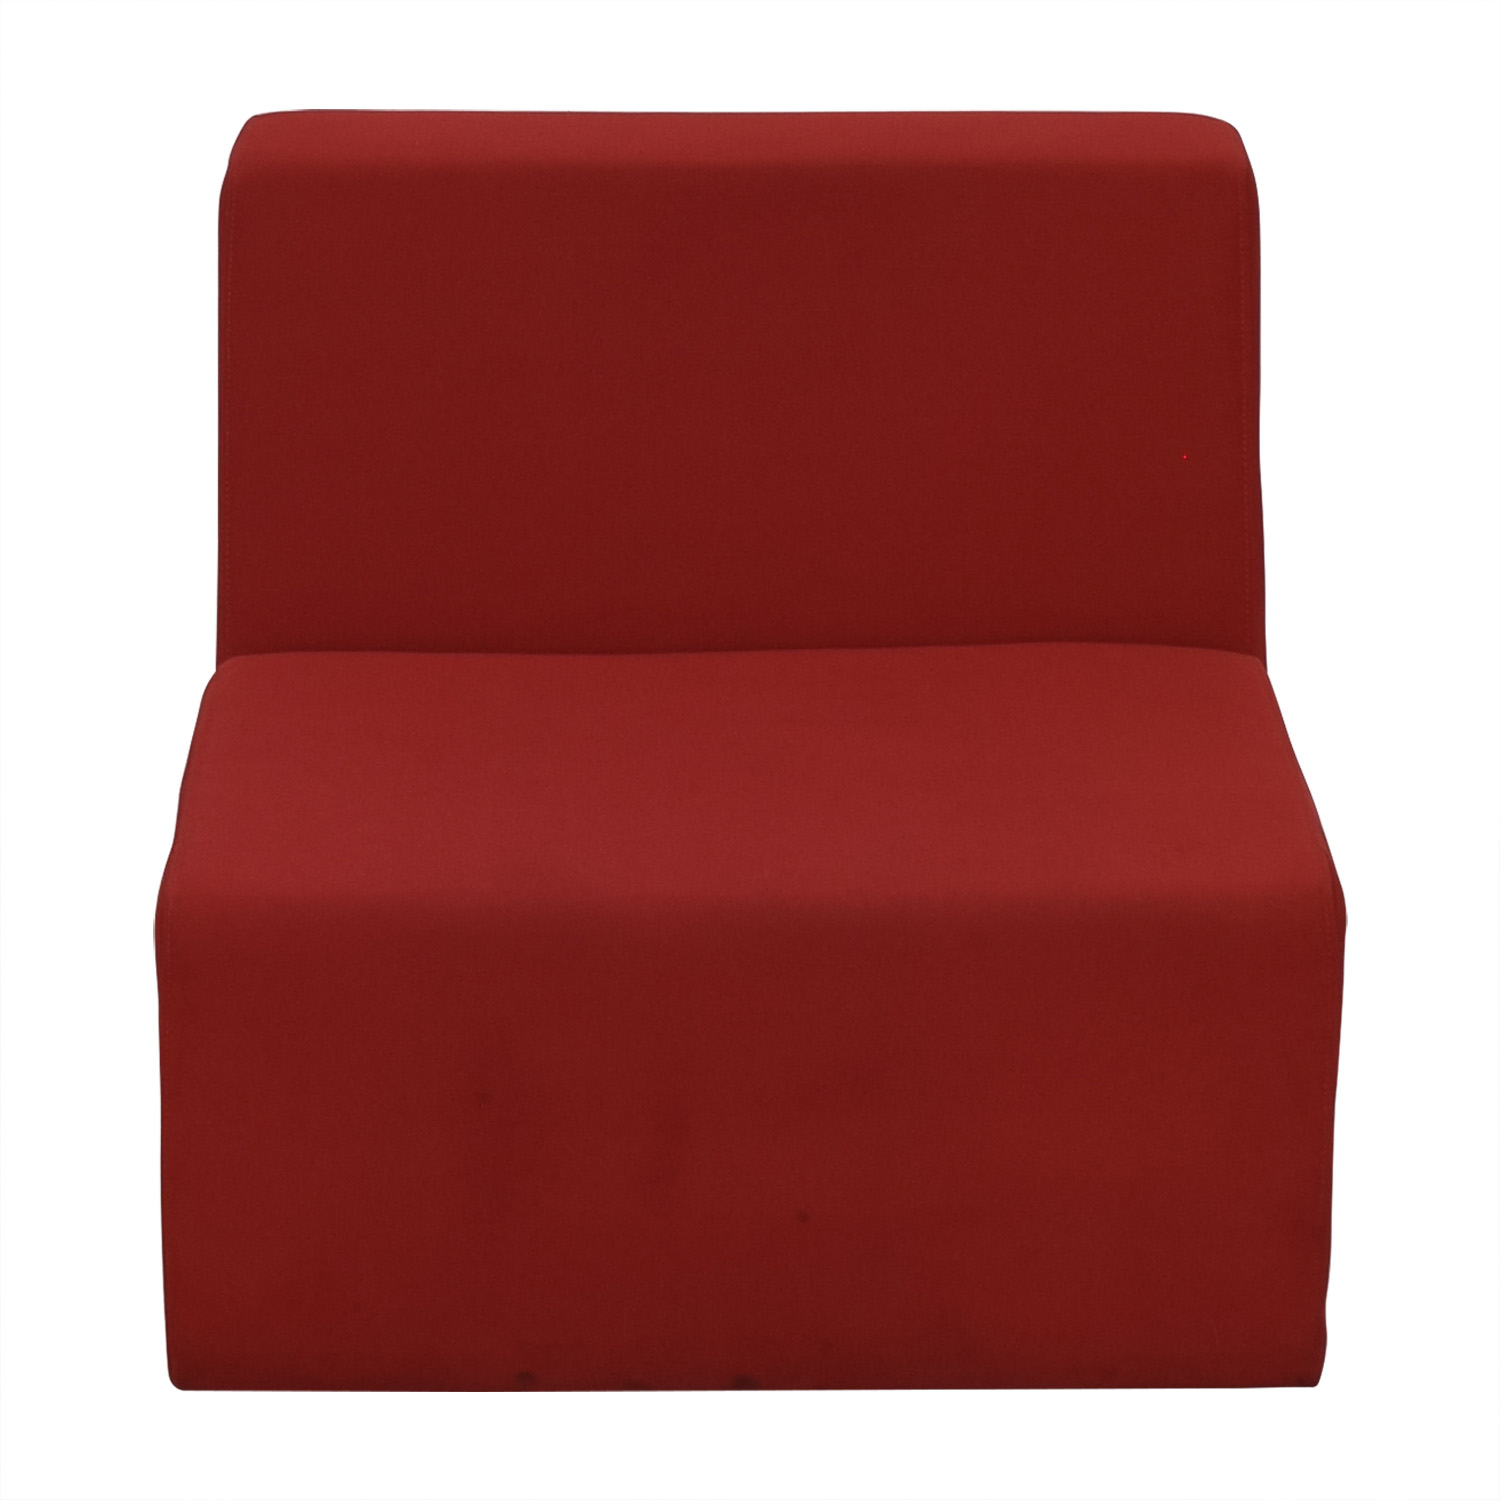 Steelcase Turnstone Steelcase Turnstone Campfire Lounge Chair on sale